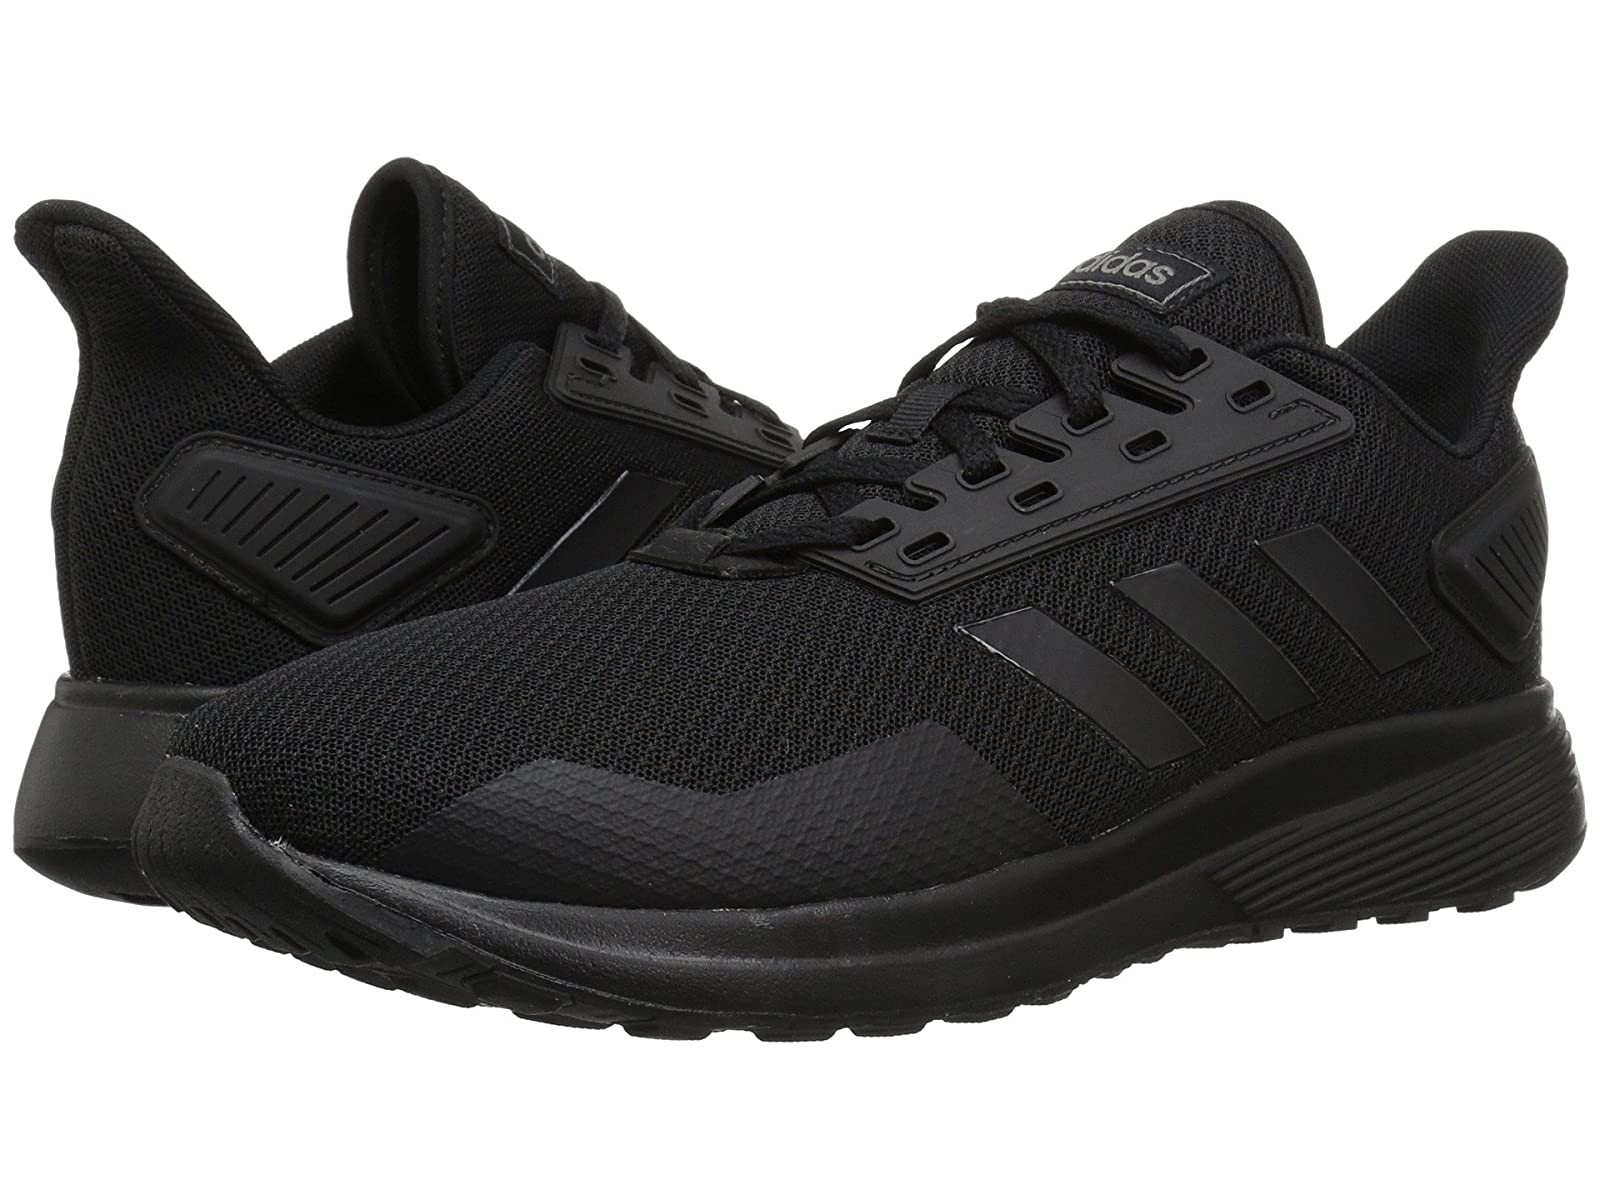 adidas Running Duramo 9Atmospheric grades have affordable shoes